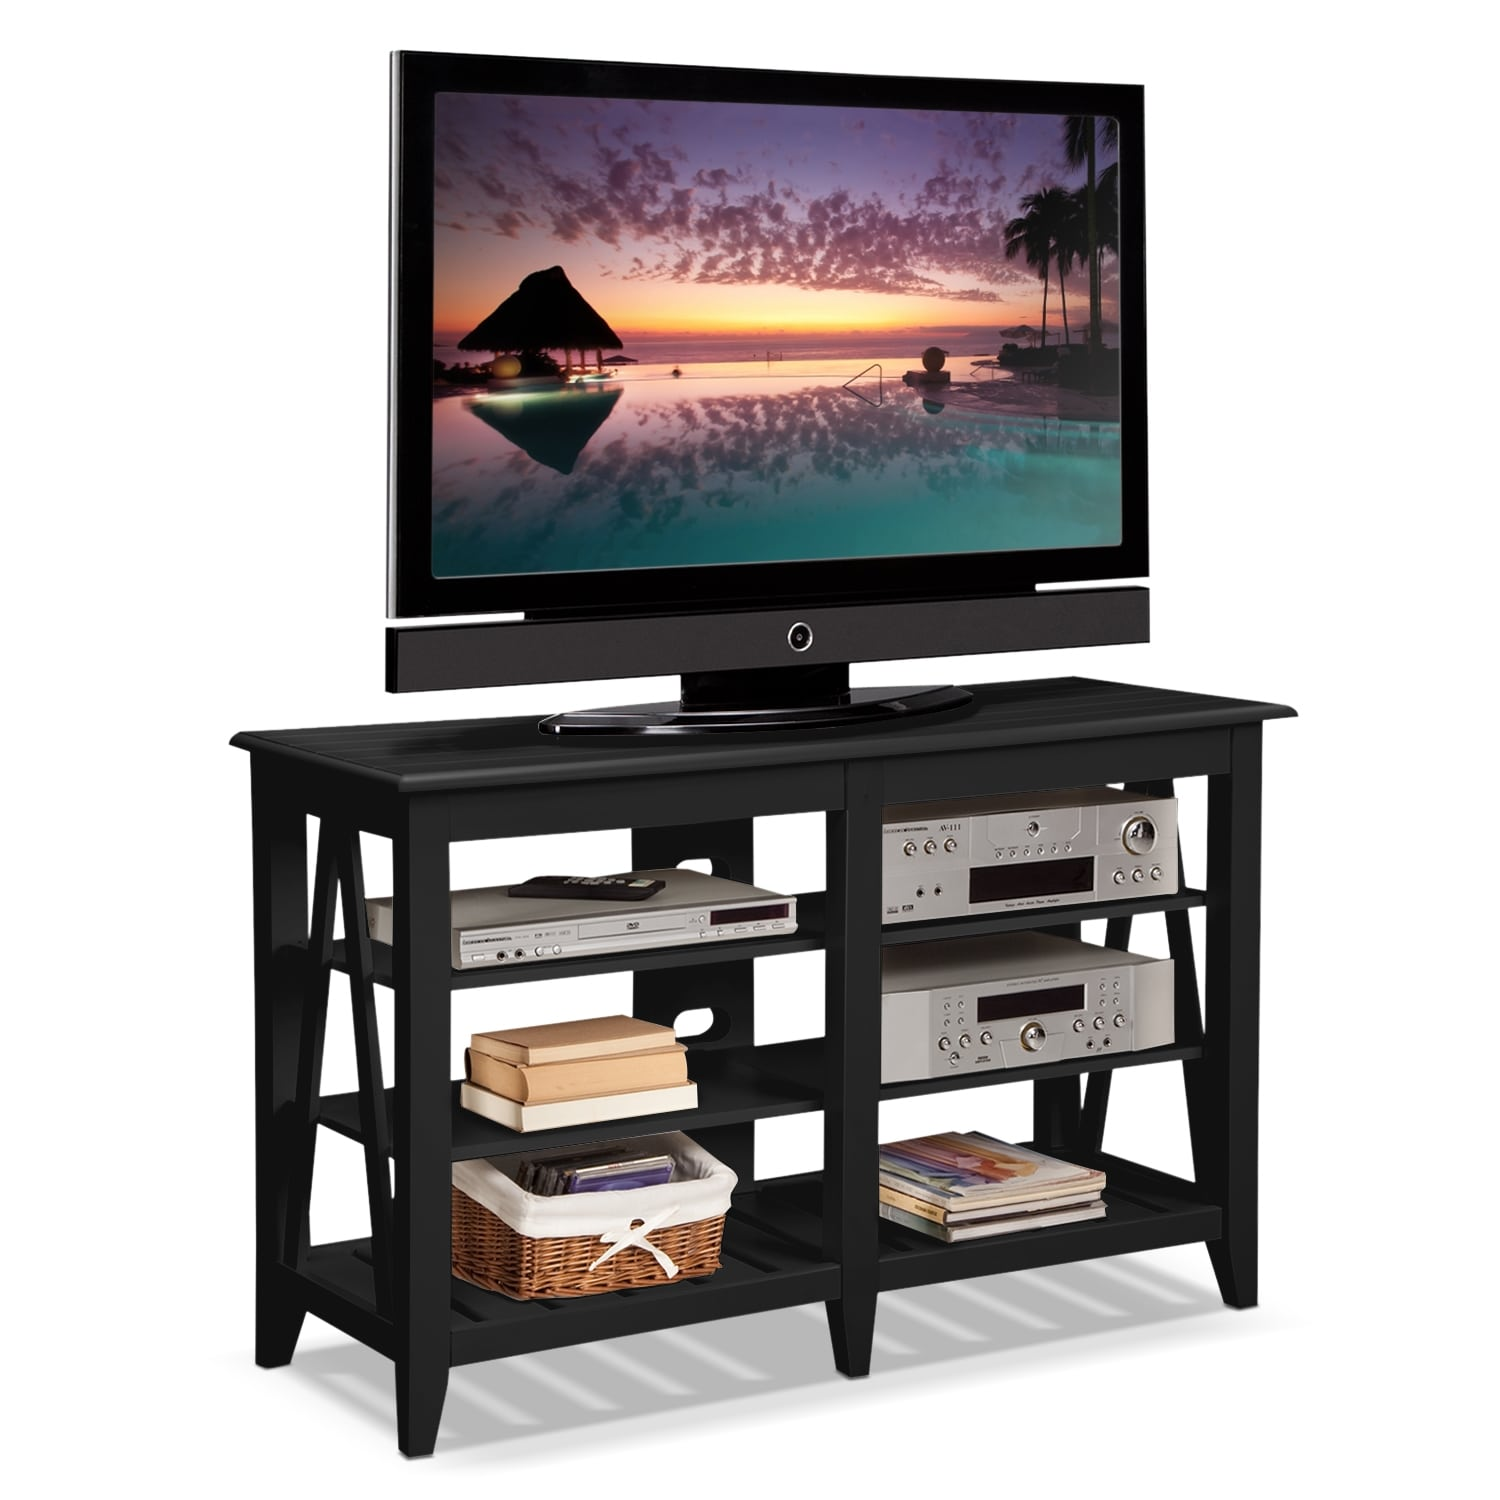 Plantation Cove Coastal TV Stand - Black